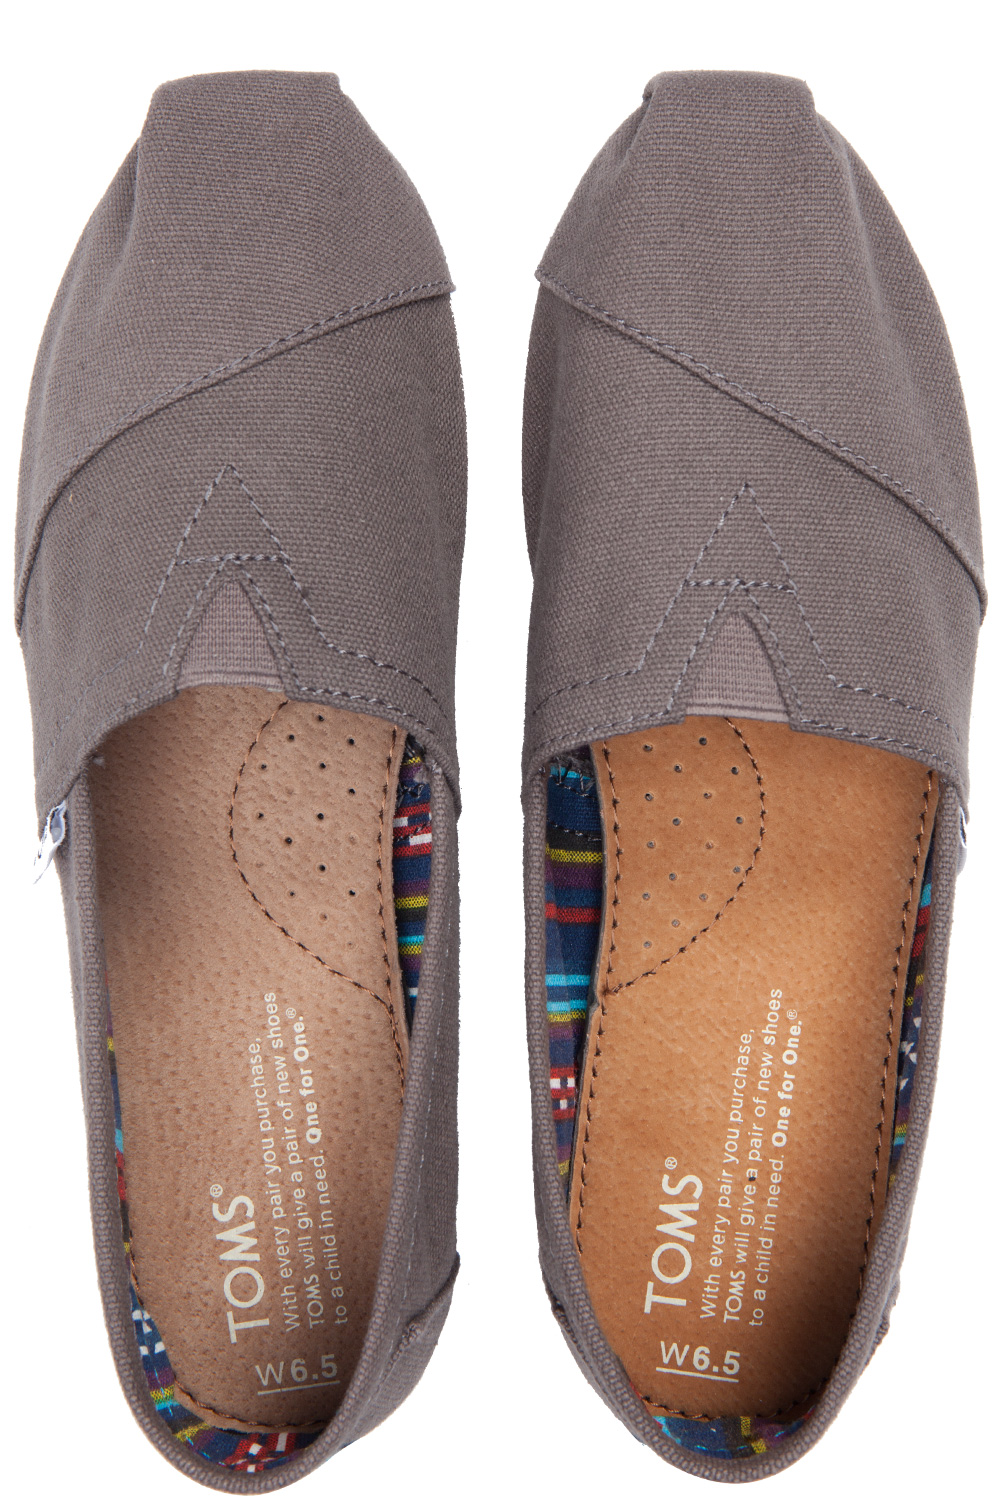 34f32587 Toms Ash Canvas Classic Womens Slip-On Grey | 365ist